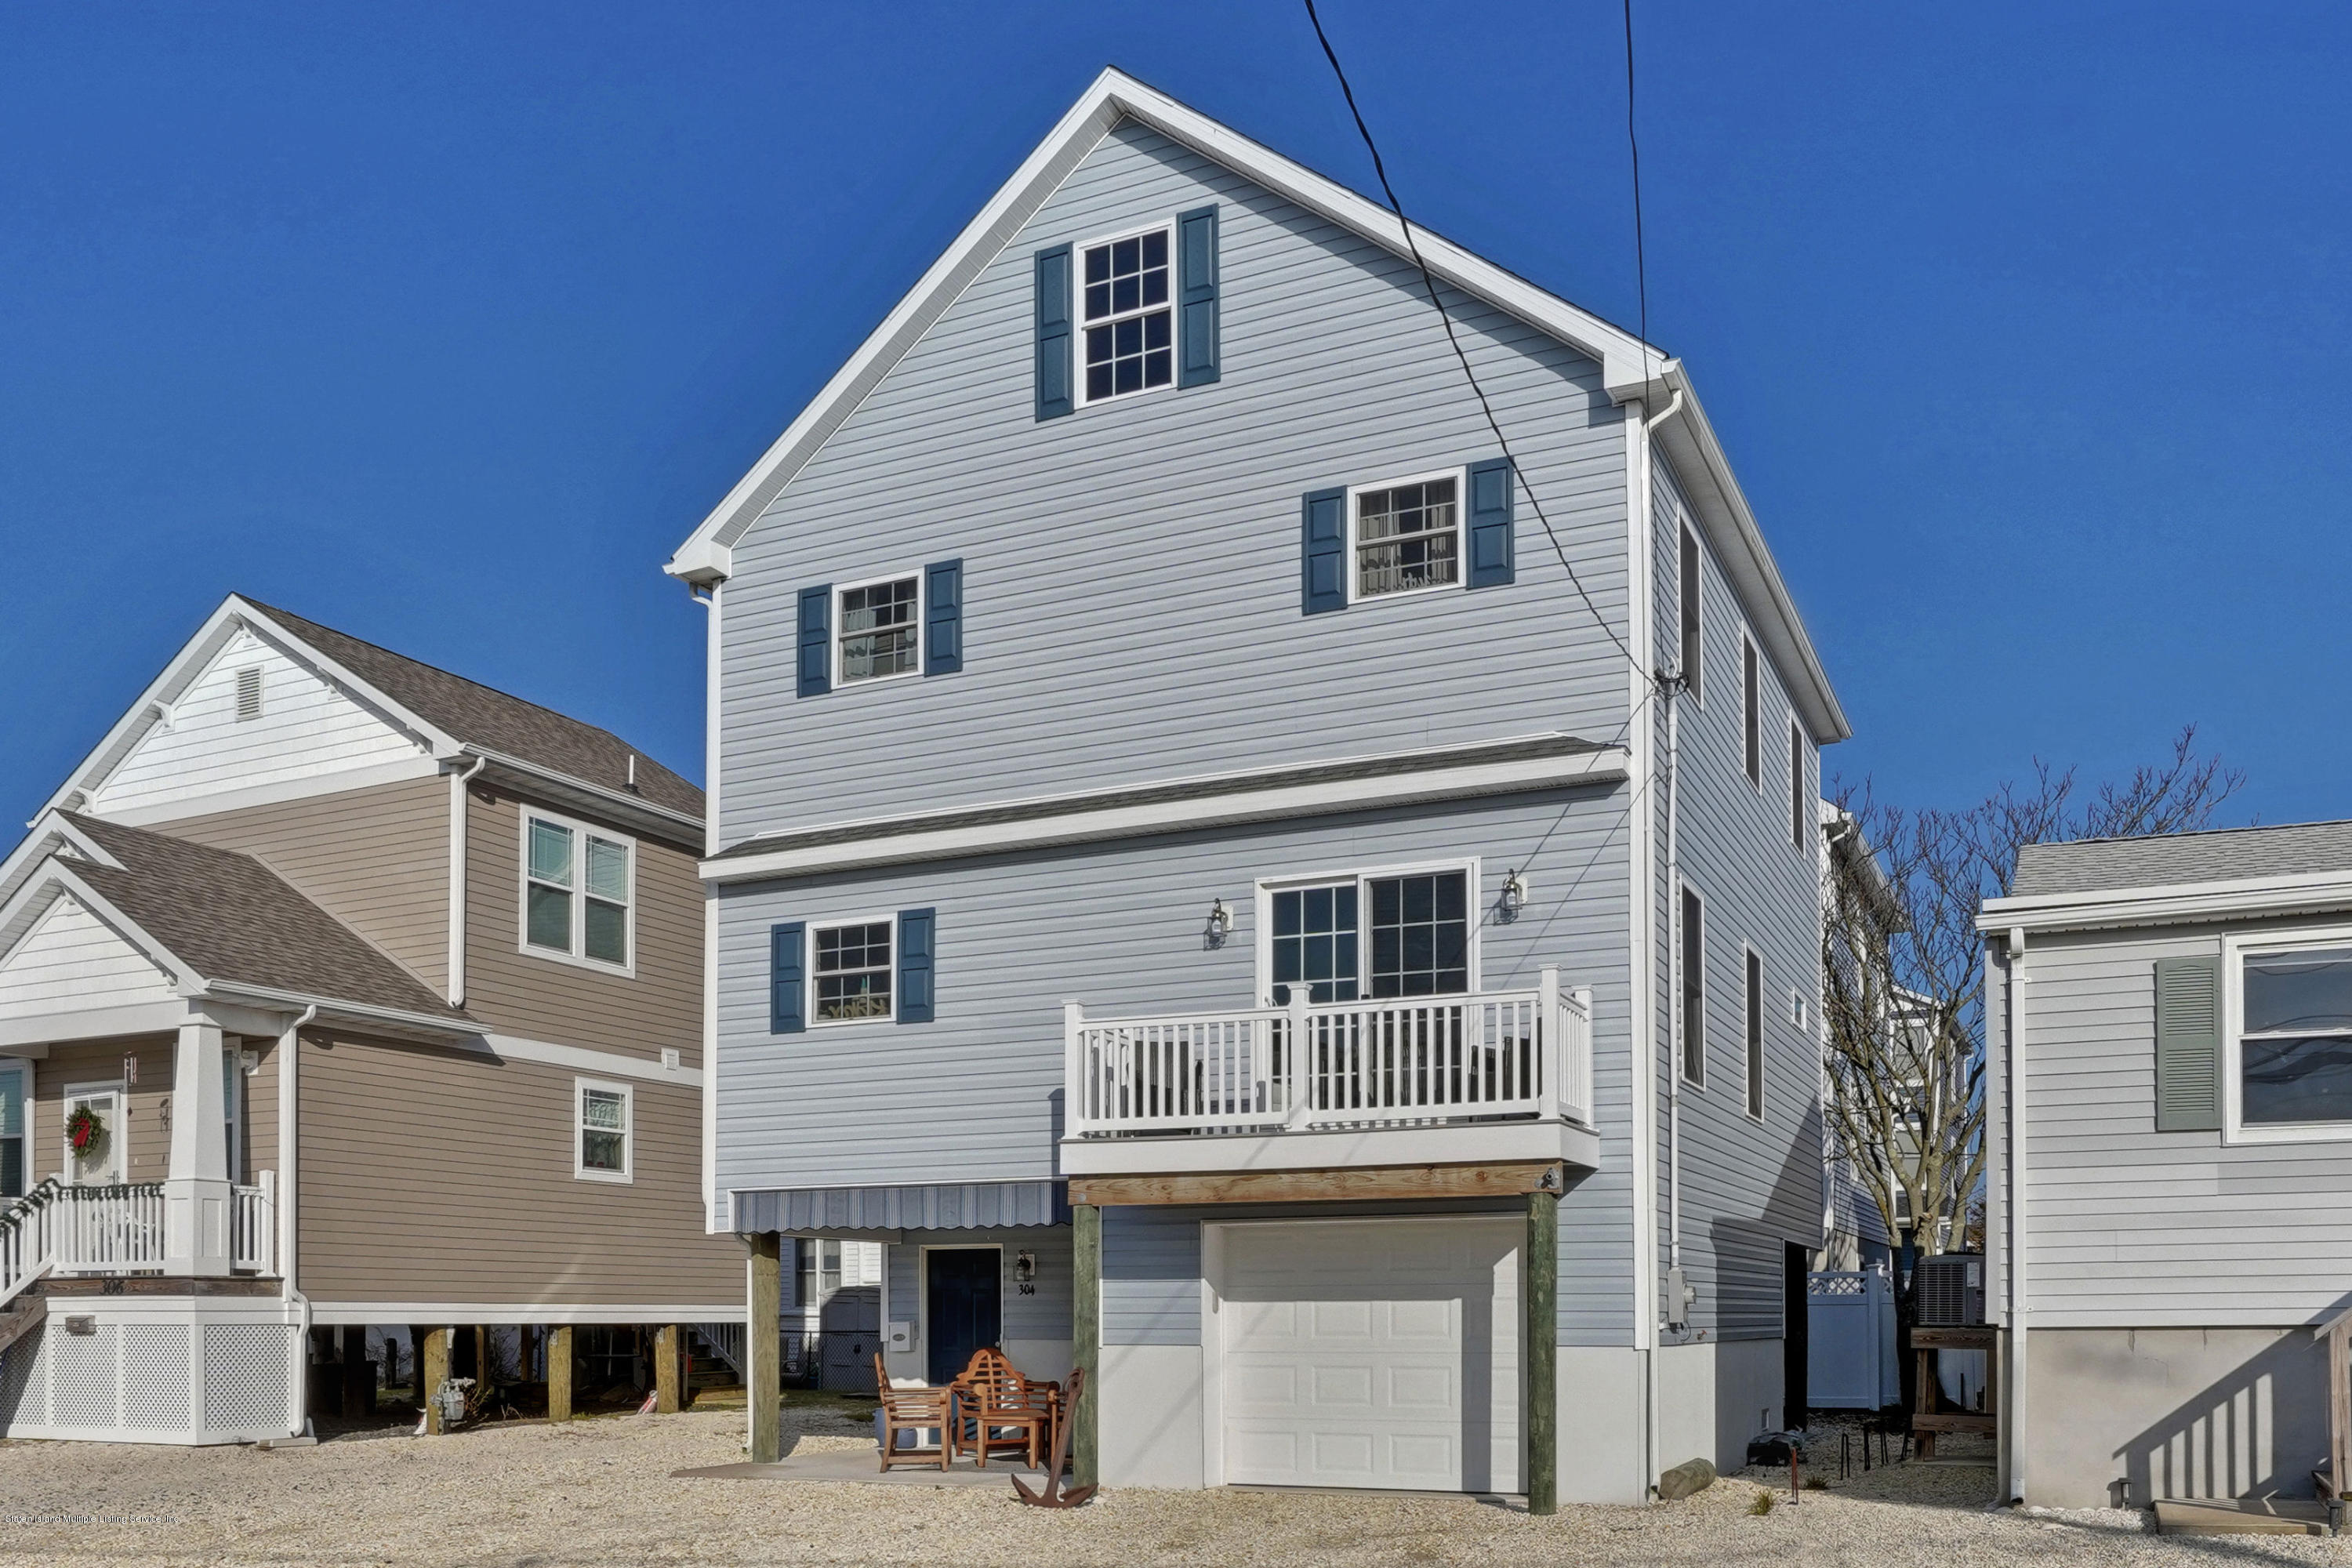 304 6th Avenue,Seaside Heights,New Jersey,08751,United States,4 Bedrooms Bedrooms,10 Rooms Rooms,2 BathroomsBathrooms,Res-Rental,6th,1124880